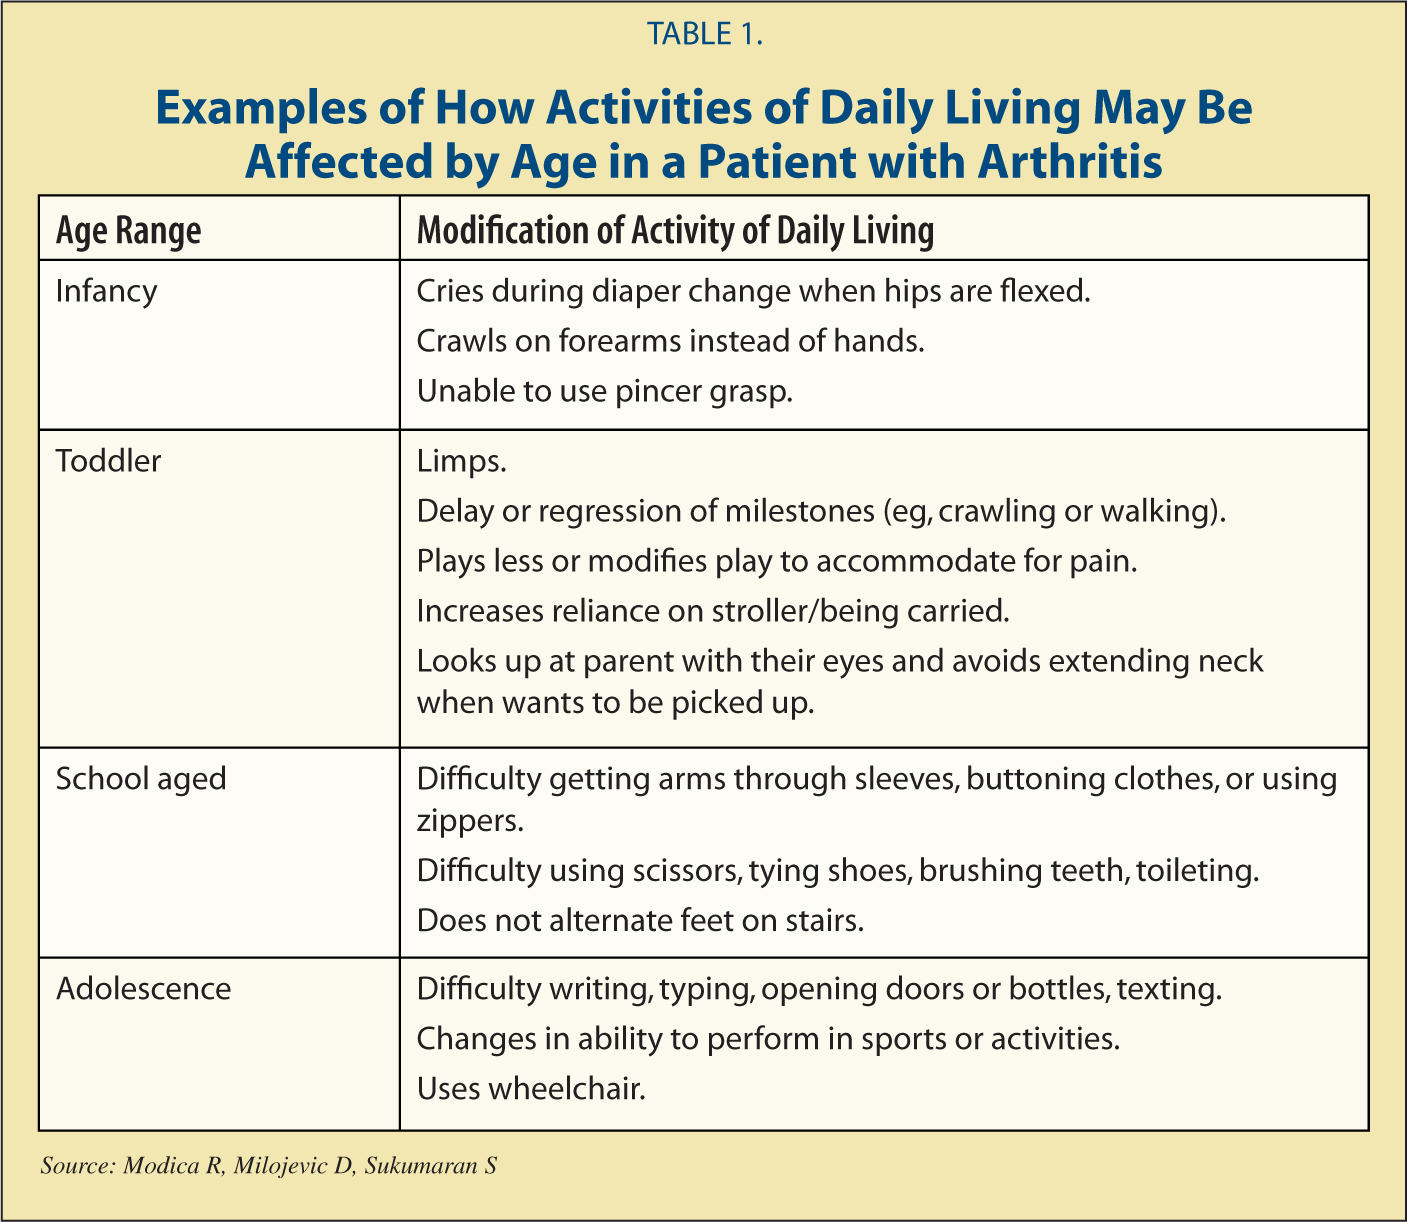 Examples of How Activities of Daily Living May Be Affected by Age in a Patient with Arthritis